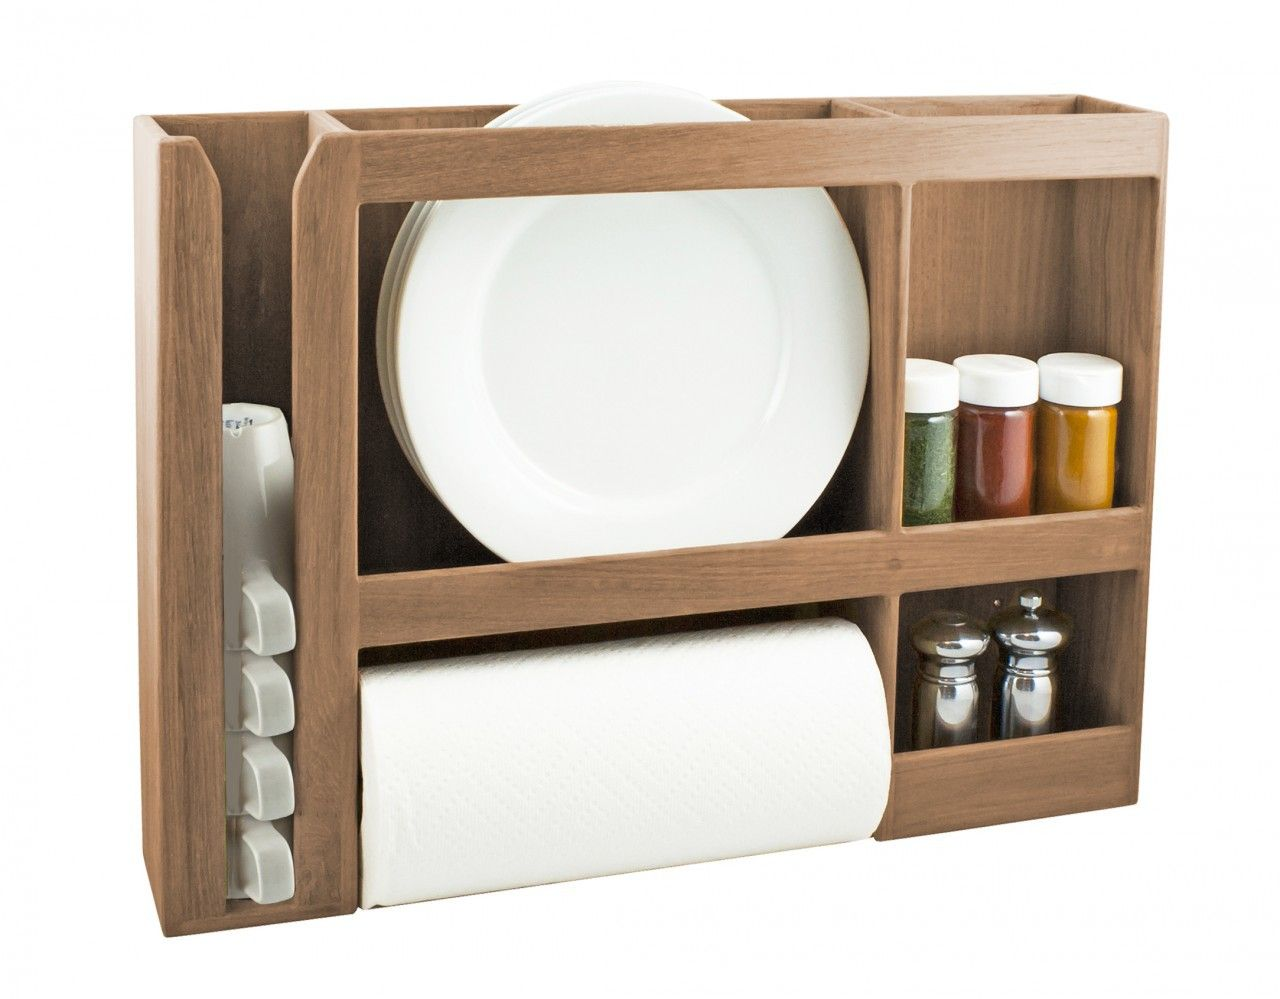 Storage Ideas And Space-Saving Inspiration From Sailors | Stockage de camping, Rangement ...